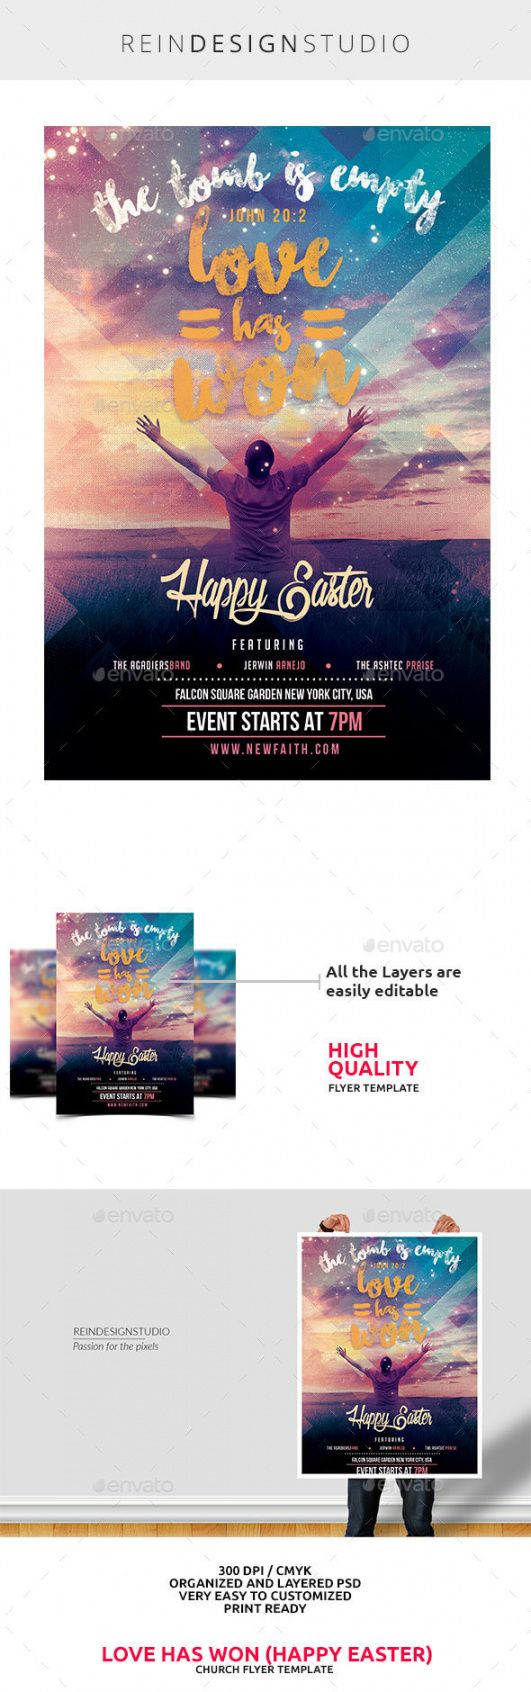 easter church flyer graphics designs & templates easter church flyer template doc